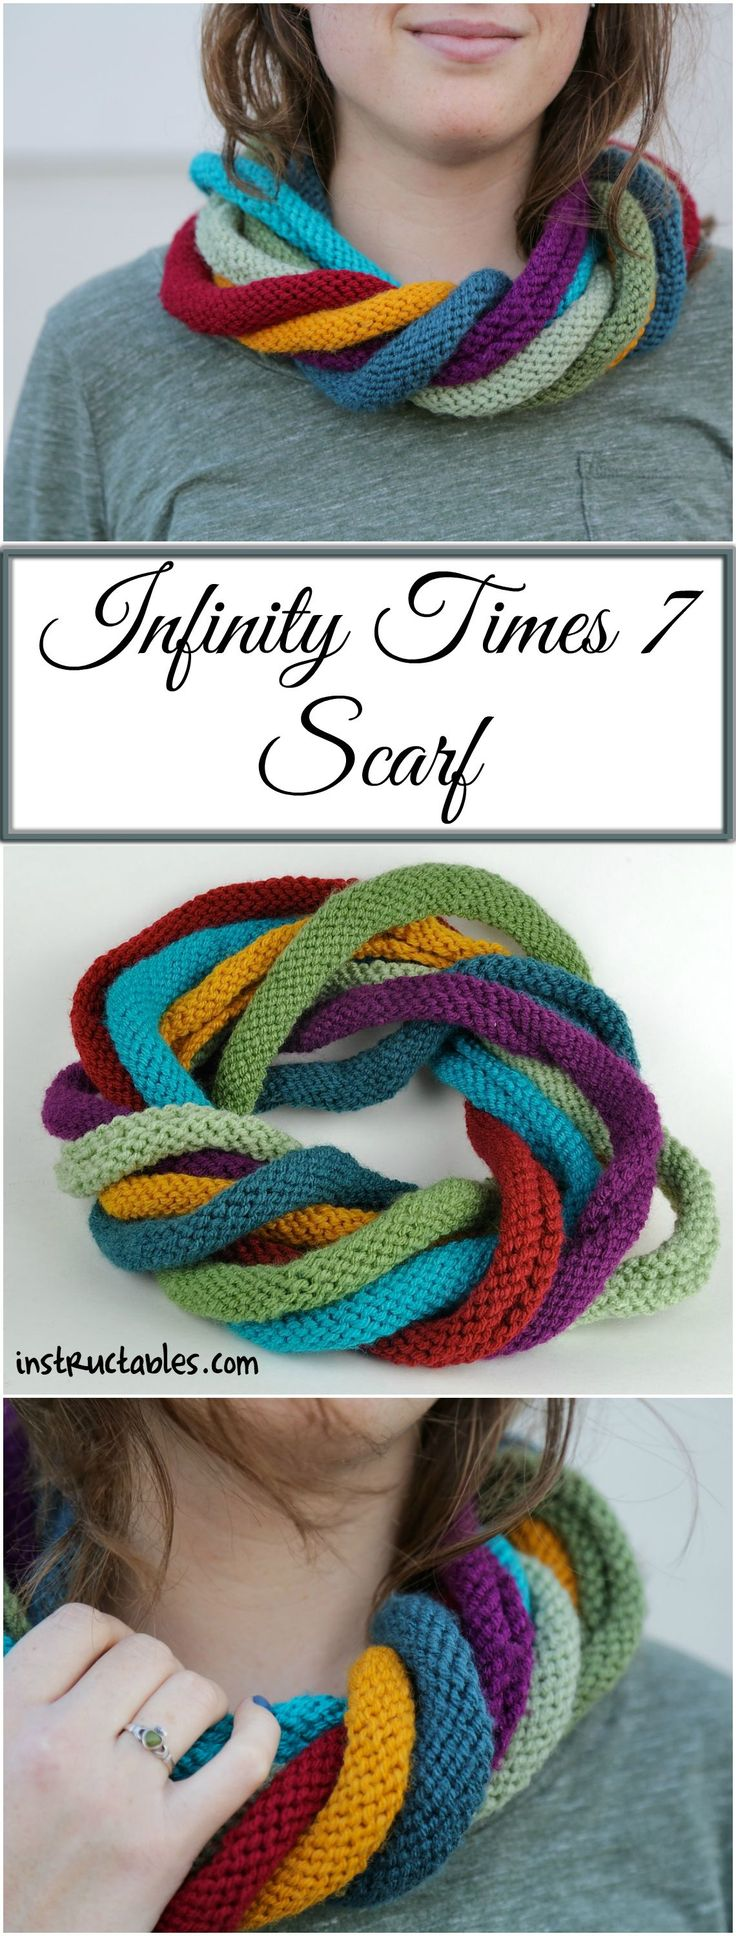 Infinity Times 7 Scarf – Knitting in a Round